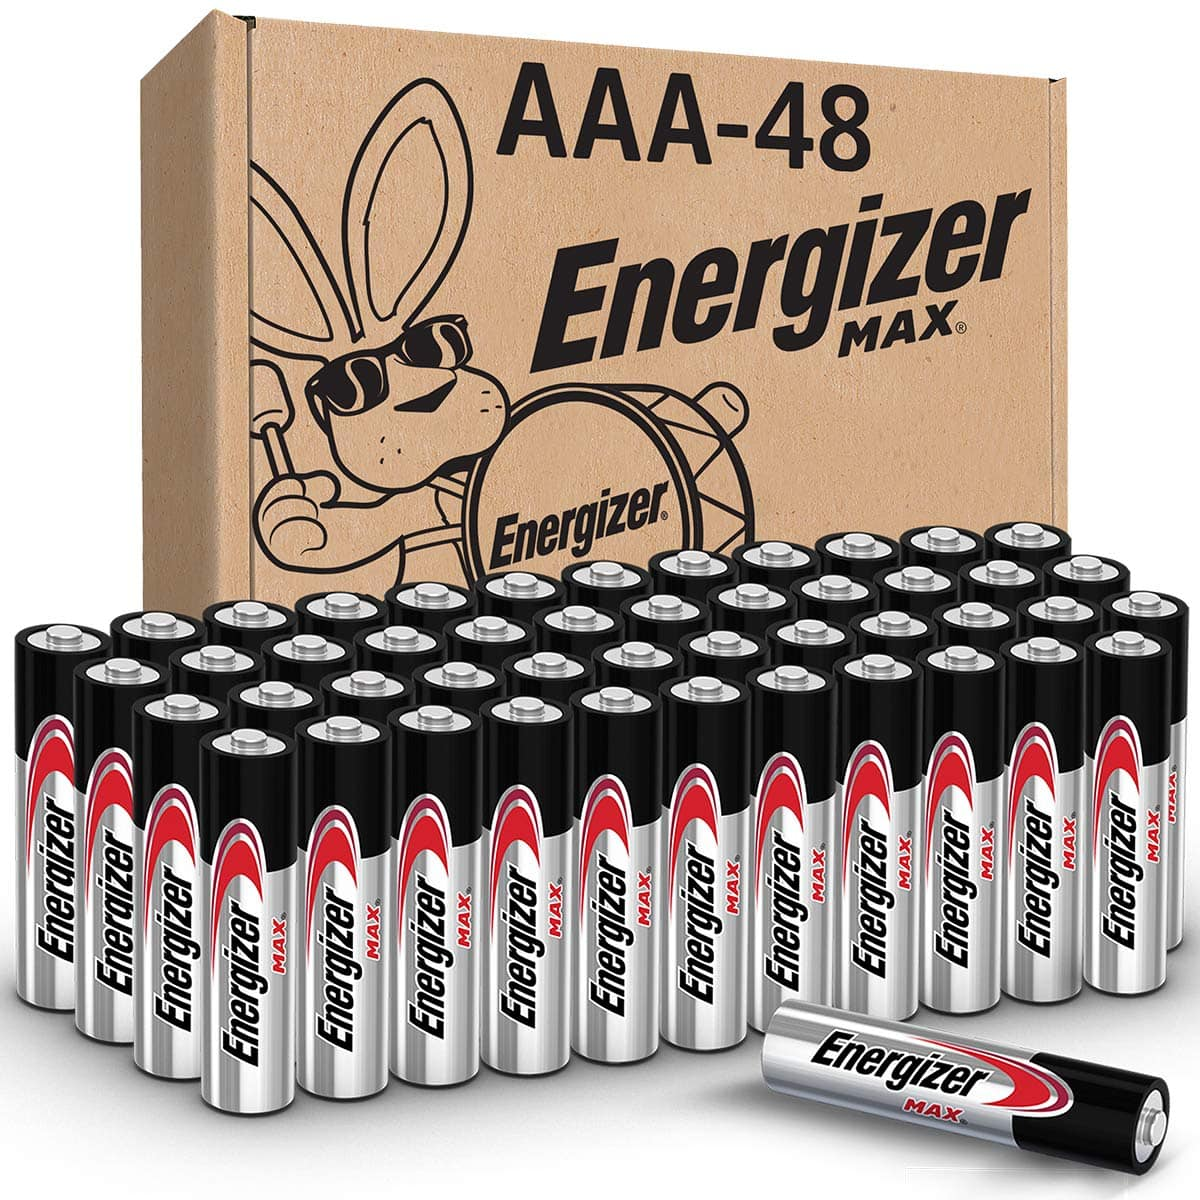 Energizer AAA Batteries (48 Count), Triple A Max Alkaline Battery - $17.98 or ~15.23 w/ SS